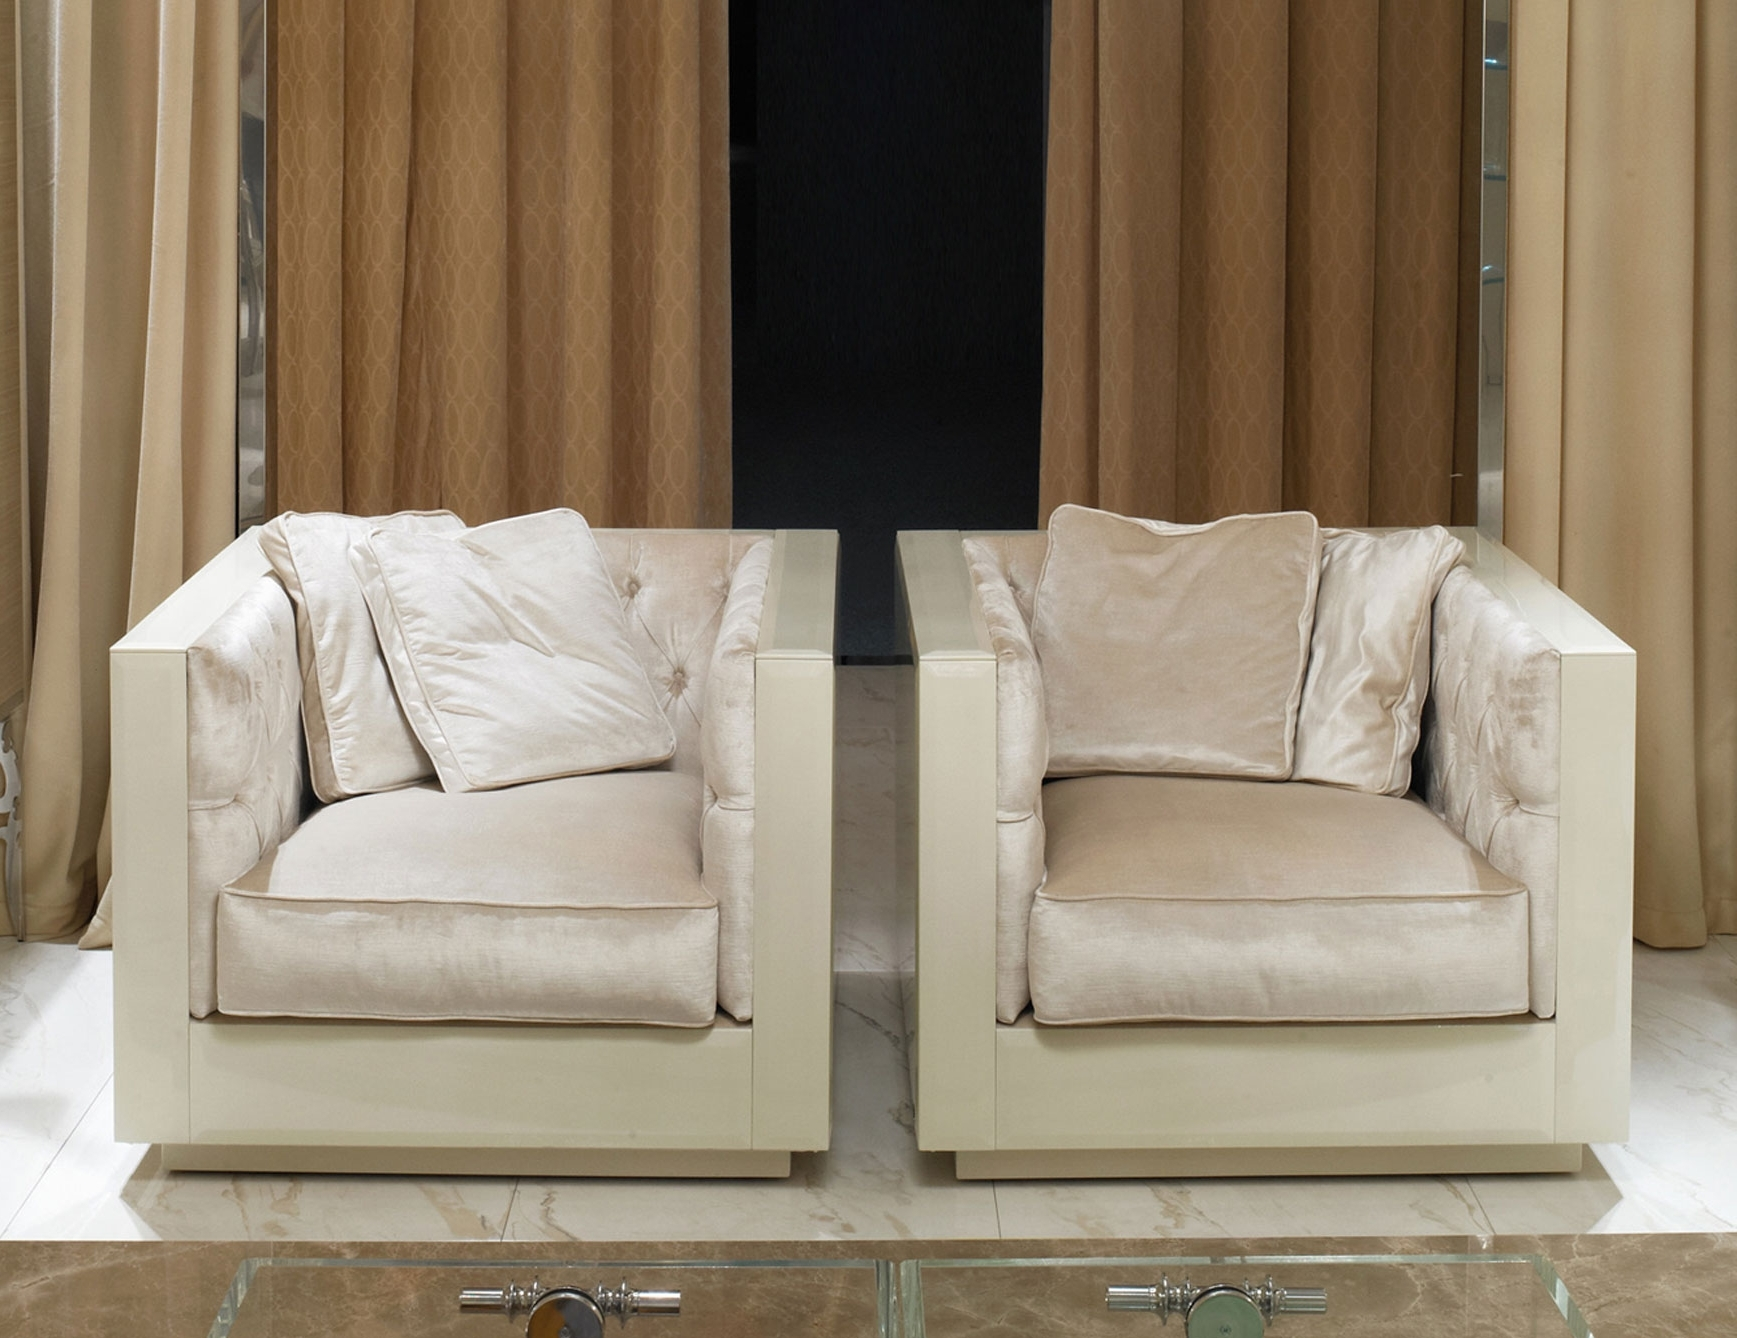 Most Recent Wide Sofa Chairs Inside Nella Vetrina Visionnaire Ipe Cavalli Evelake Luxury Italian Chair (View 10 of 20)